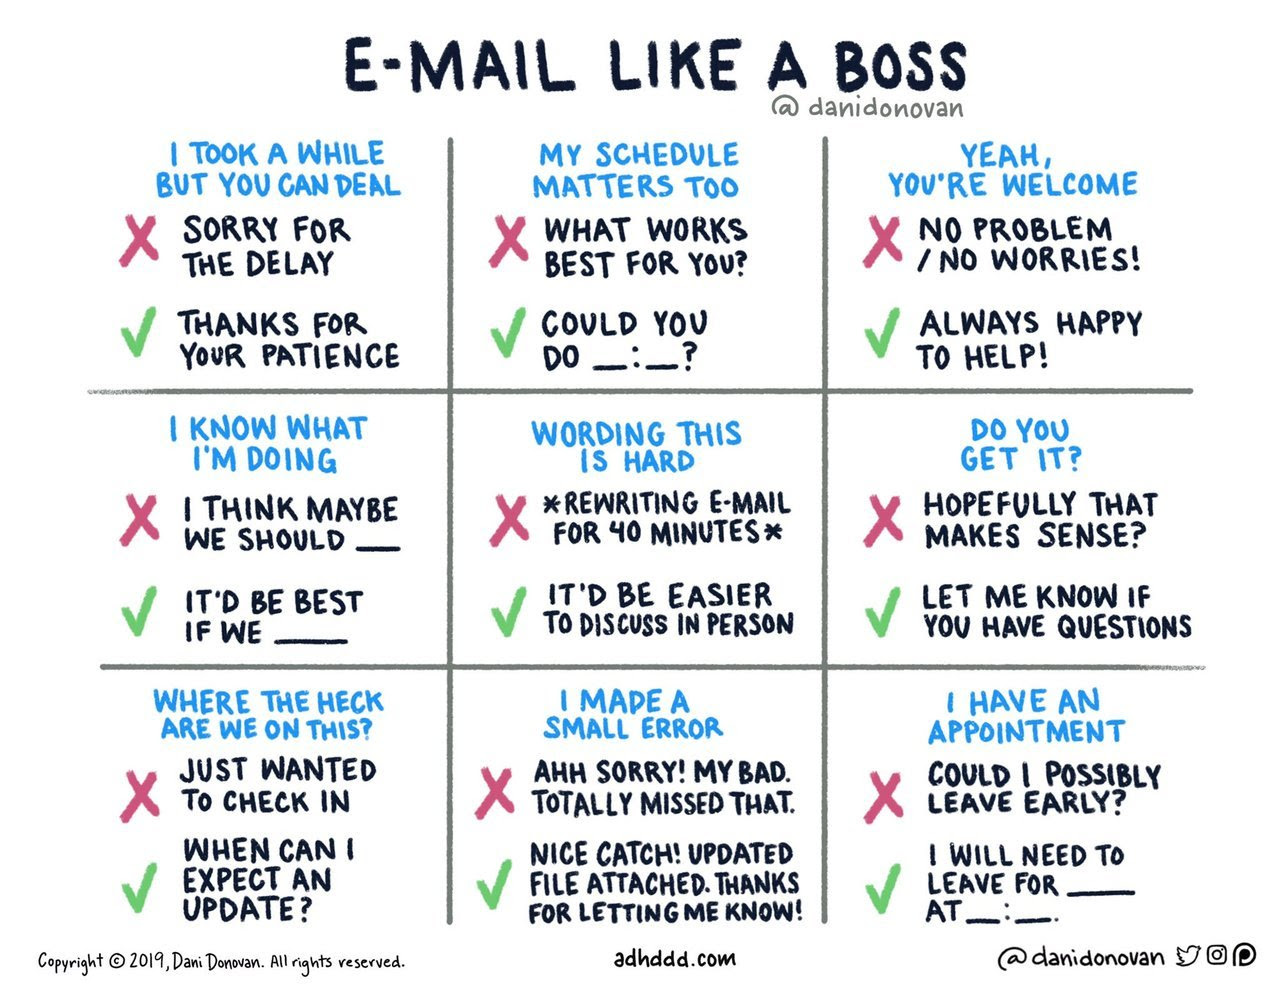 """I've been working on being more conscious of how I write emails, and made this handy printable guide! I have a bad habit of overusing exclamation points, emojis, and qualifiers like """"just† and """"possibly† to sound extra-friendly and non-threatening in..."""